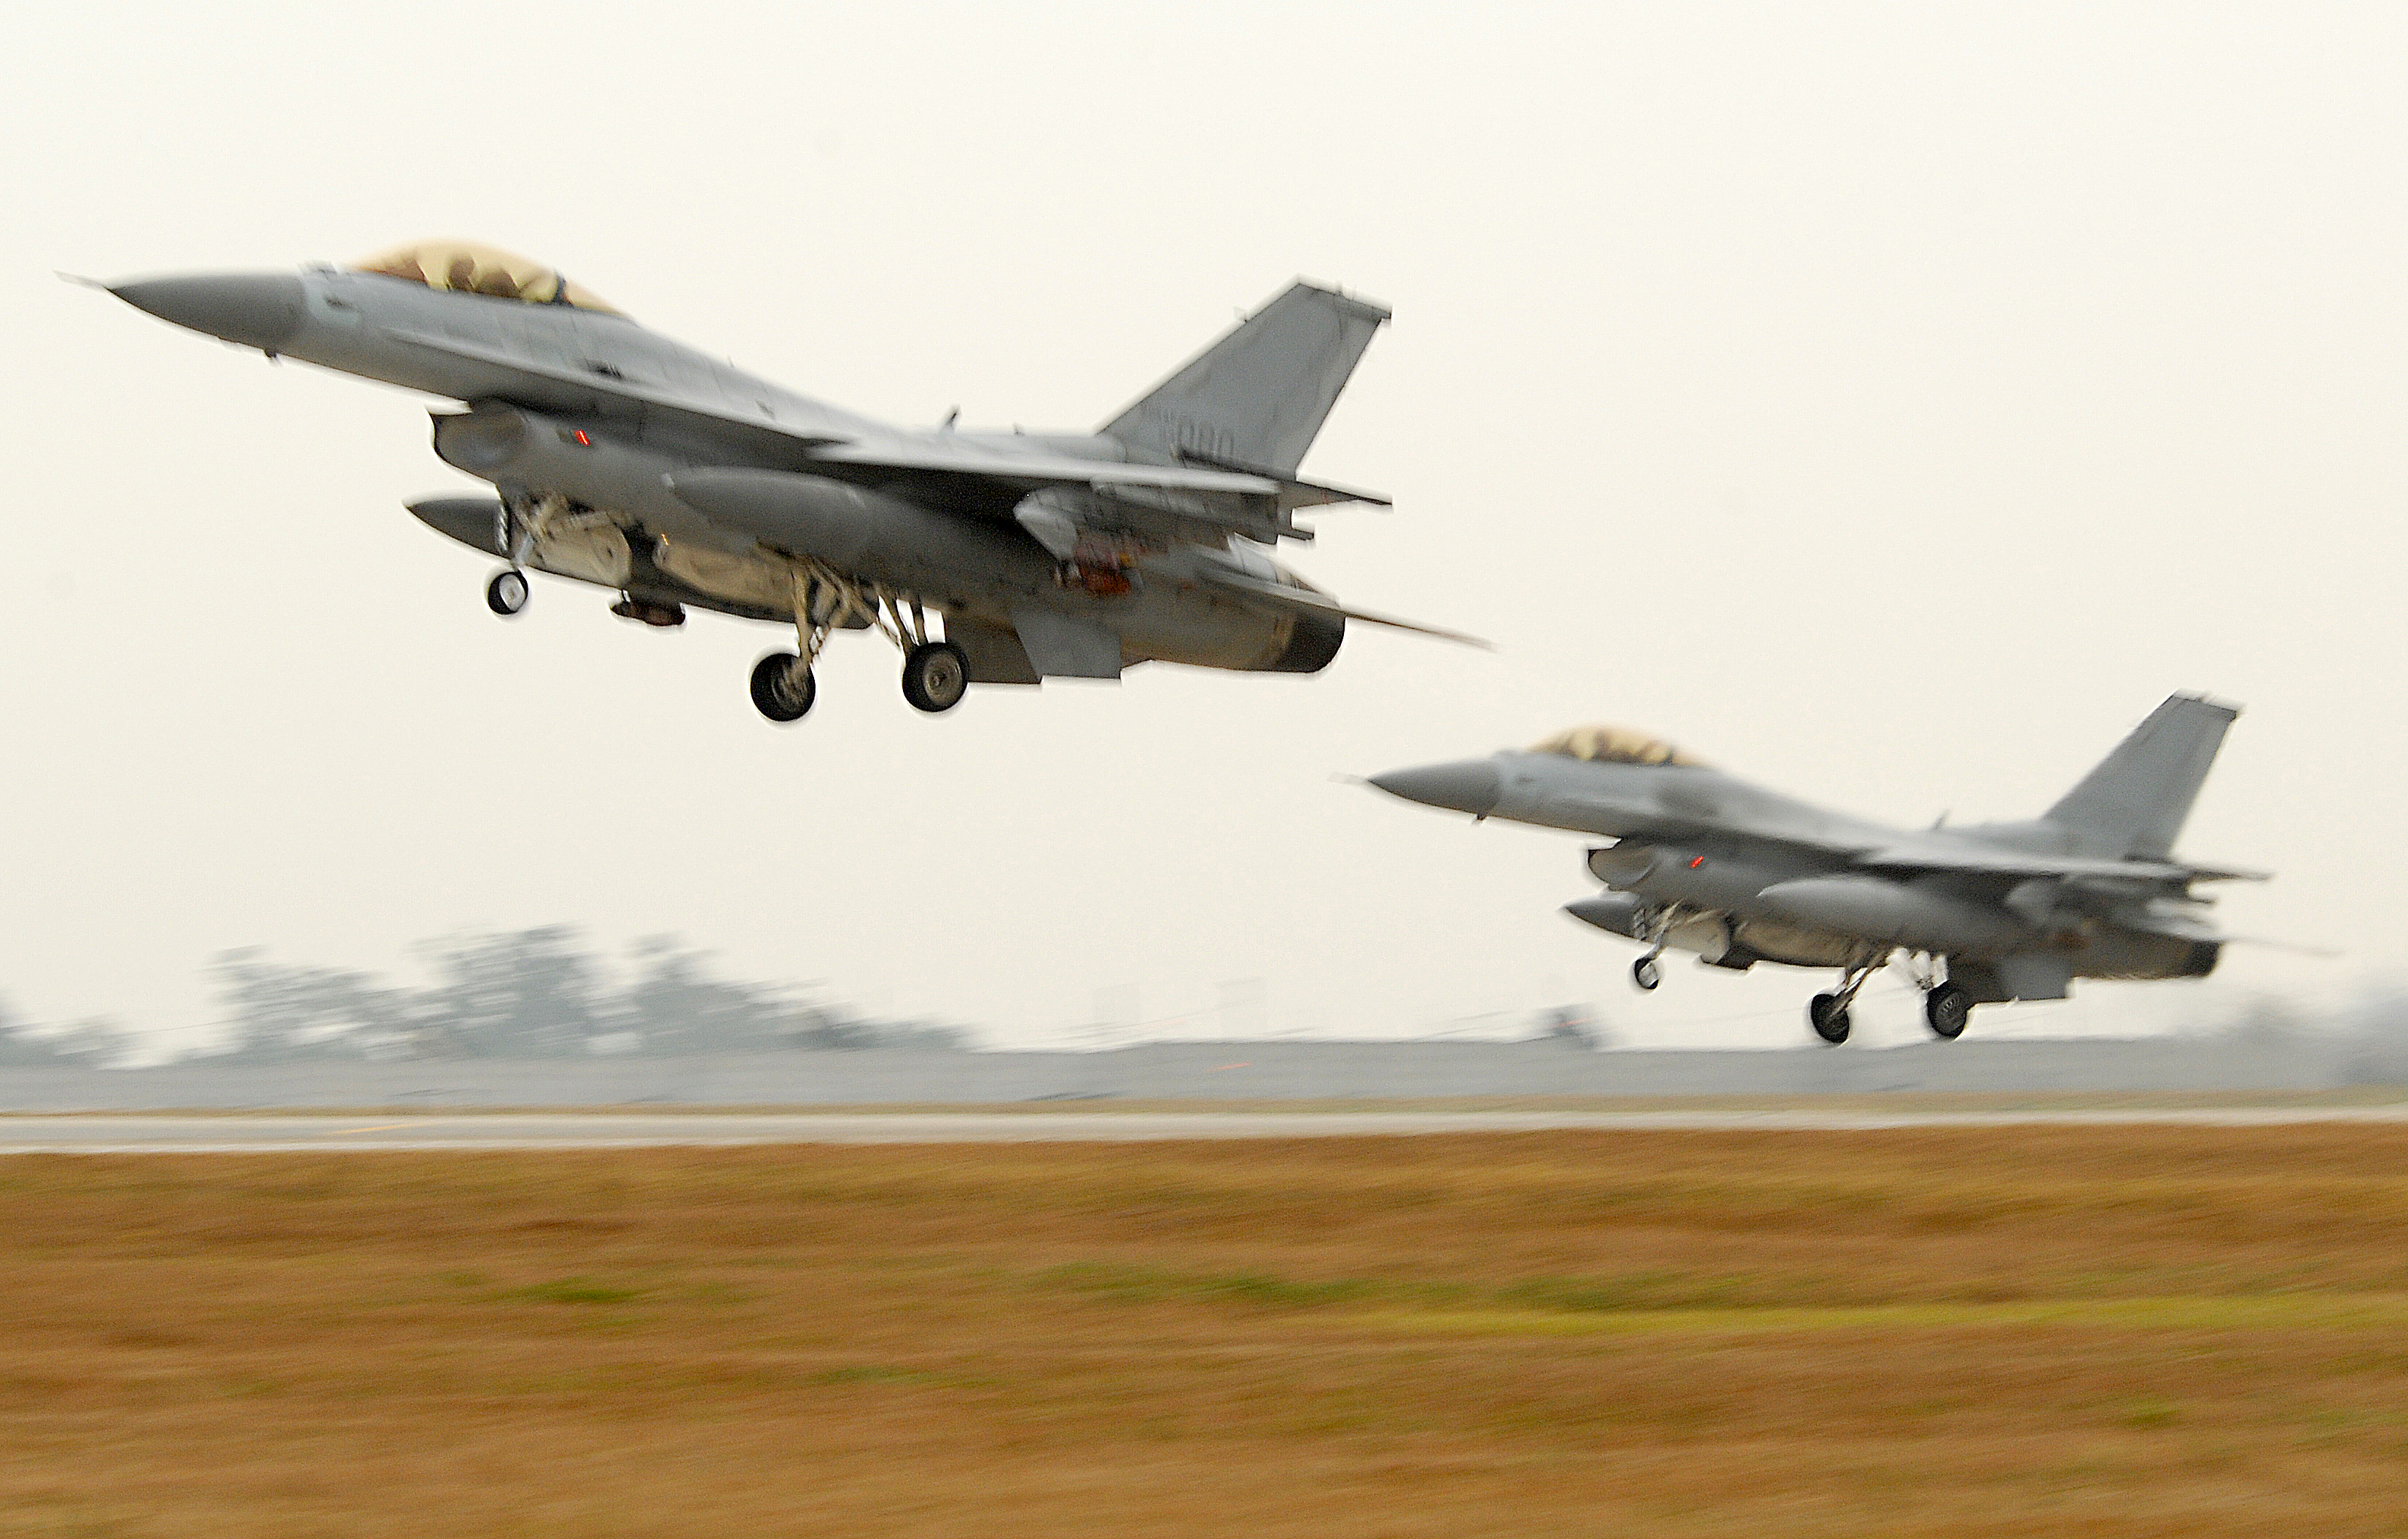 https://upload.wikimedia.org/wikipedia/commons/3/36/ROK_KF-16s_take_off_from_Kunsan_AB_2008-10-05.JPG